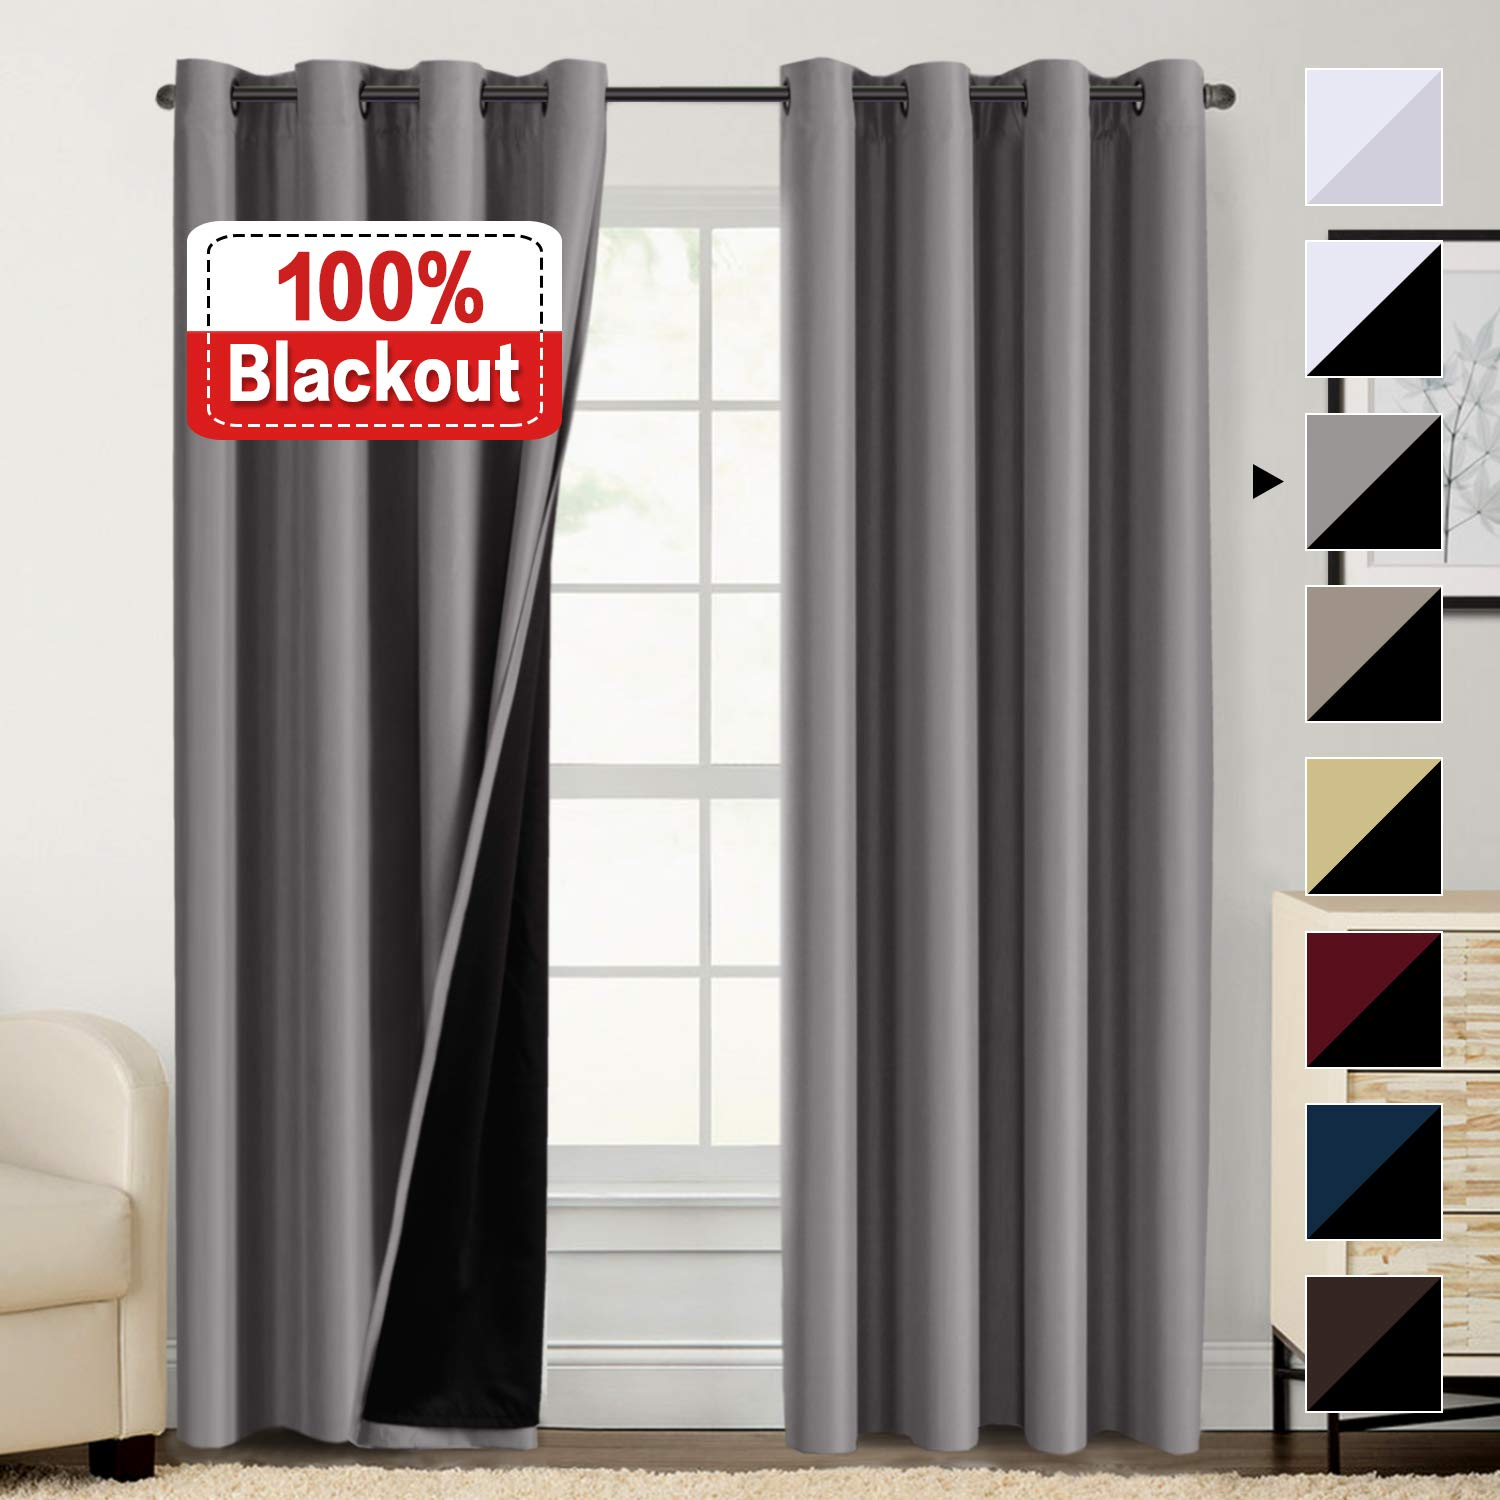 Blackout Curtains Bedroom Thermal Insulated